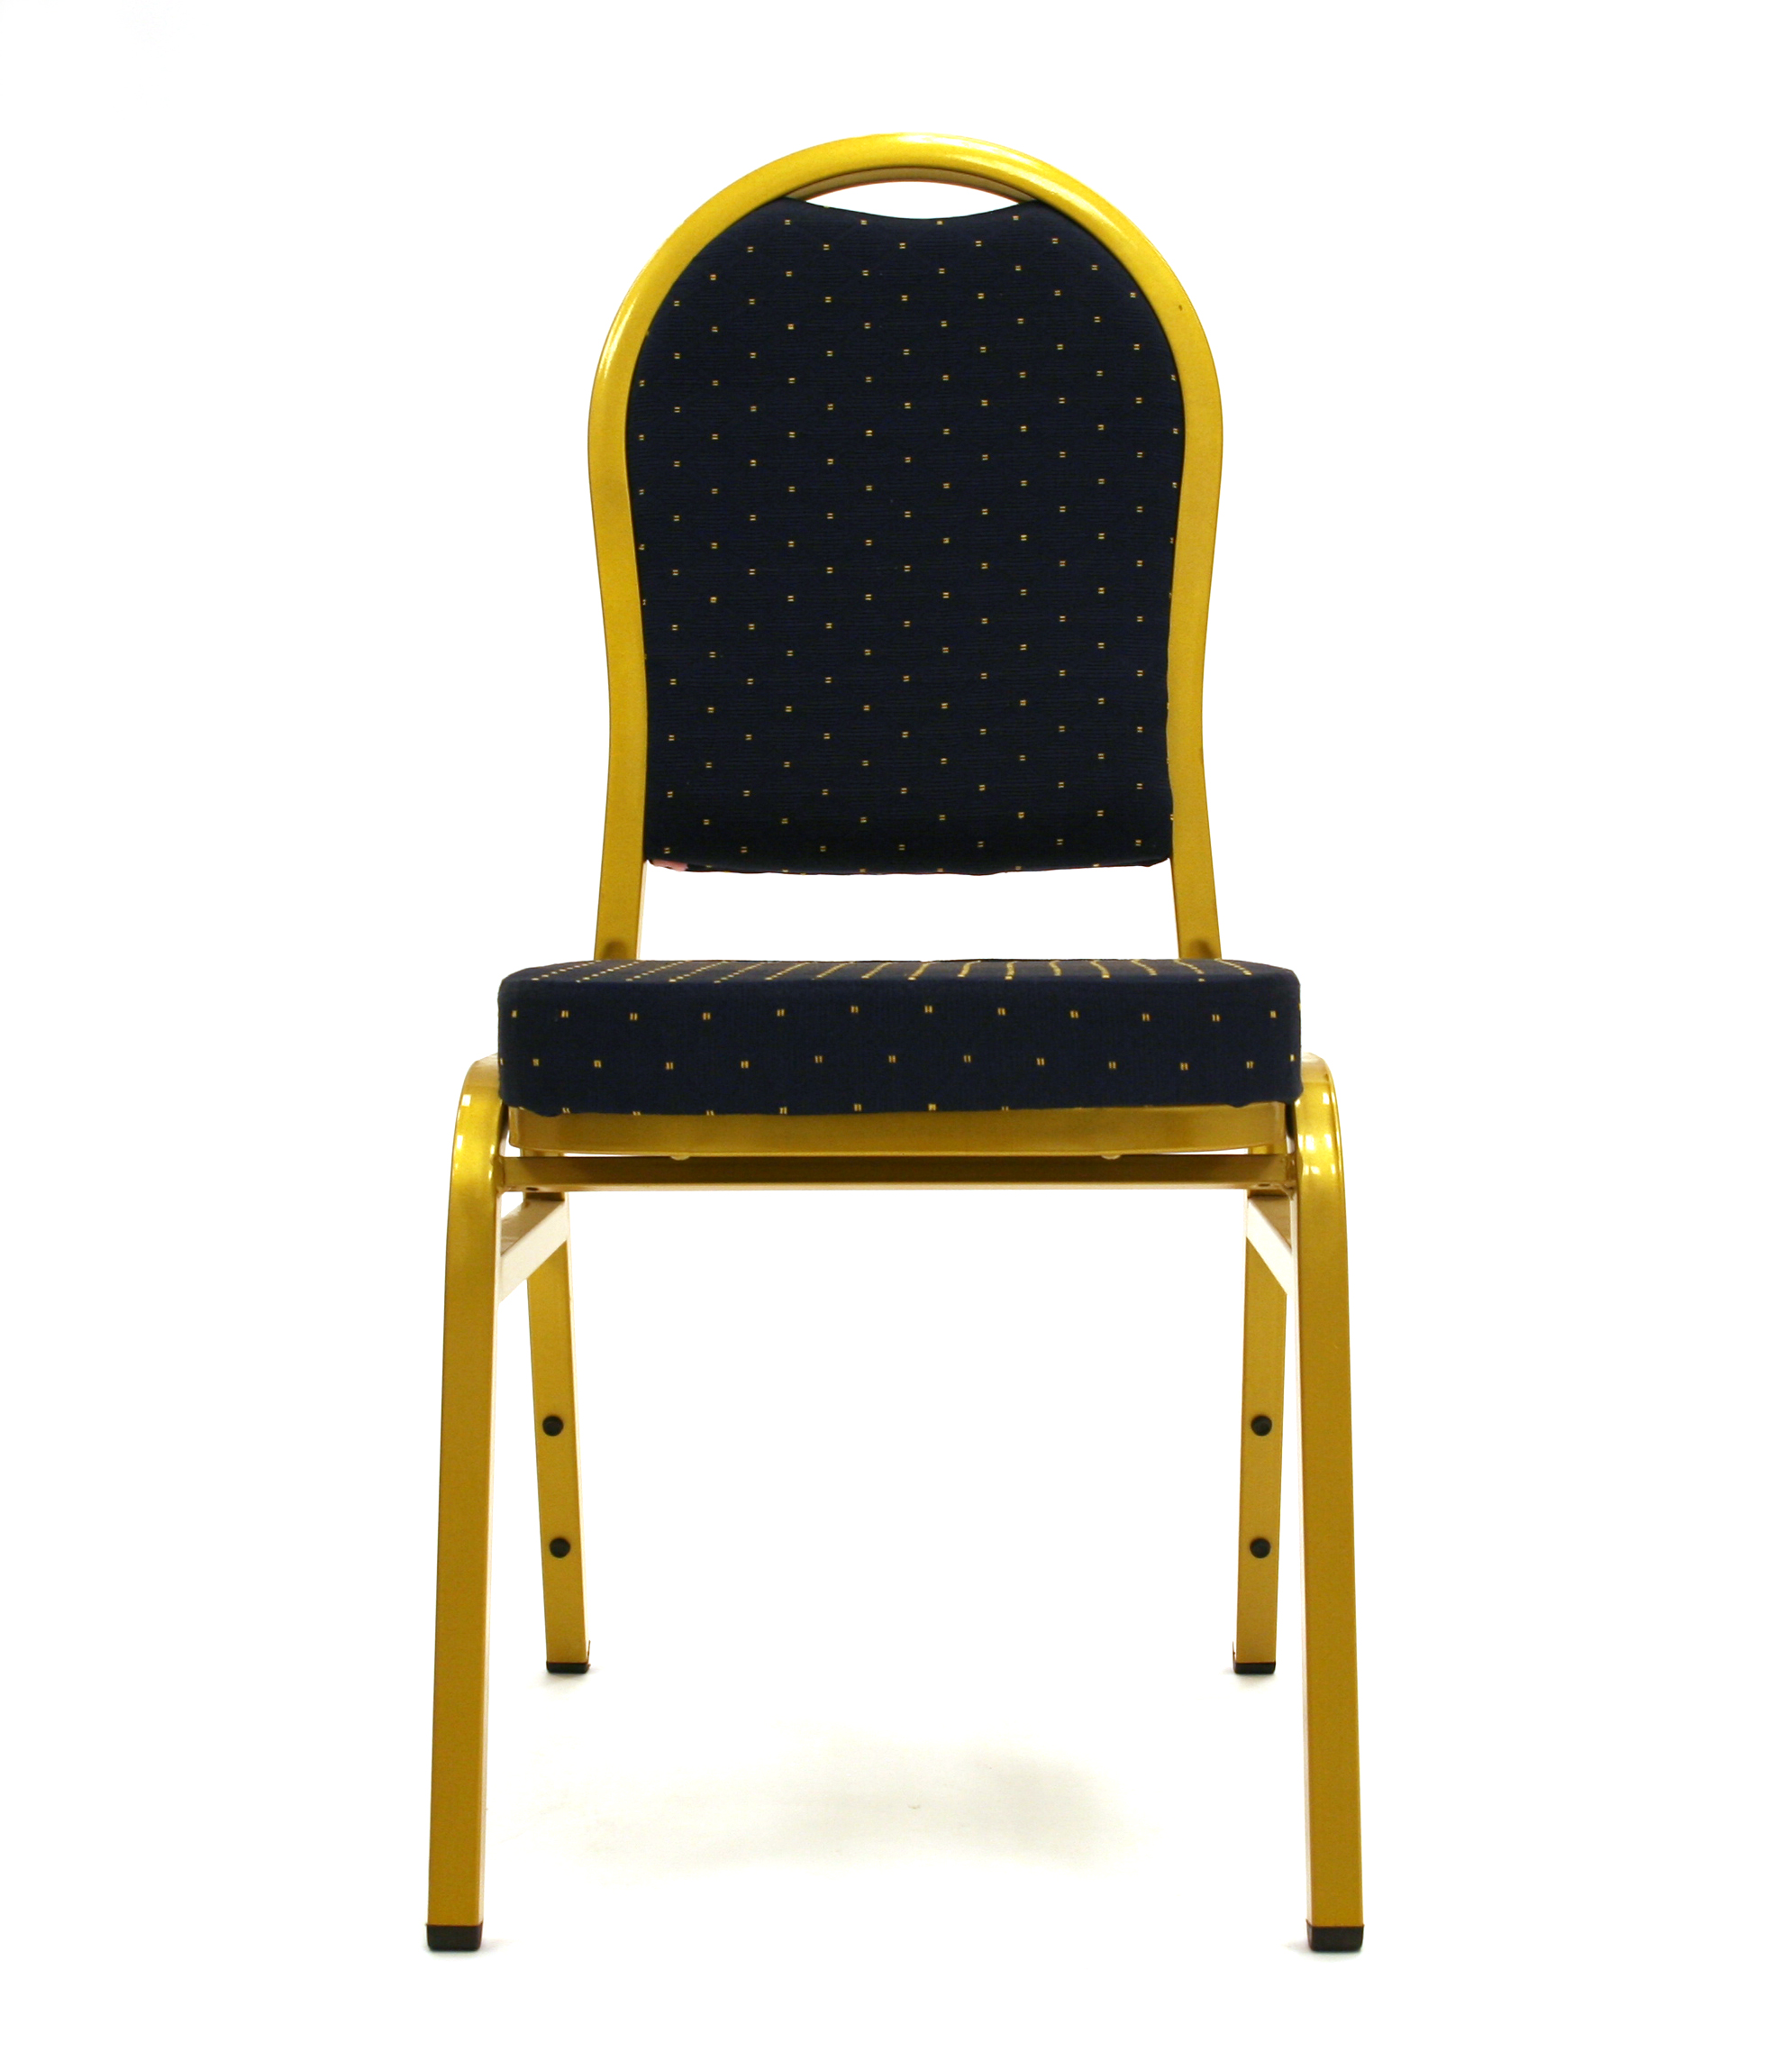 Gold steel framed banquet  chair with a dark blue padded seat & back - BE Event Hire